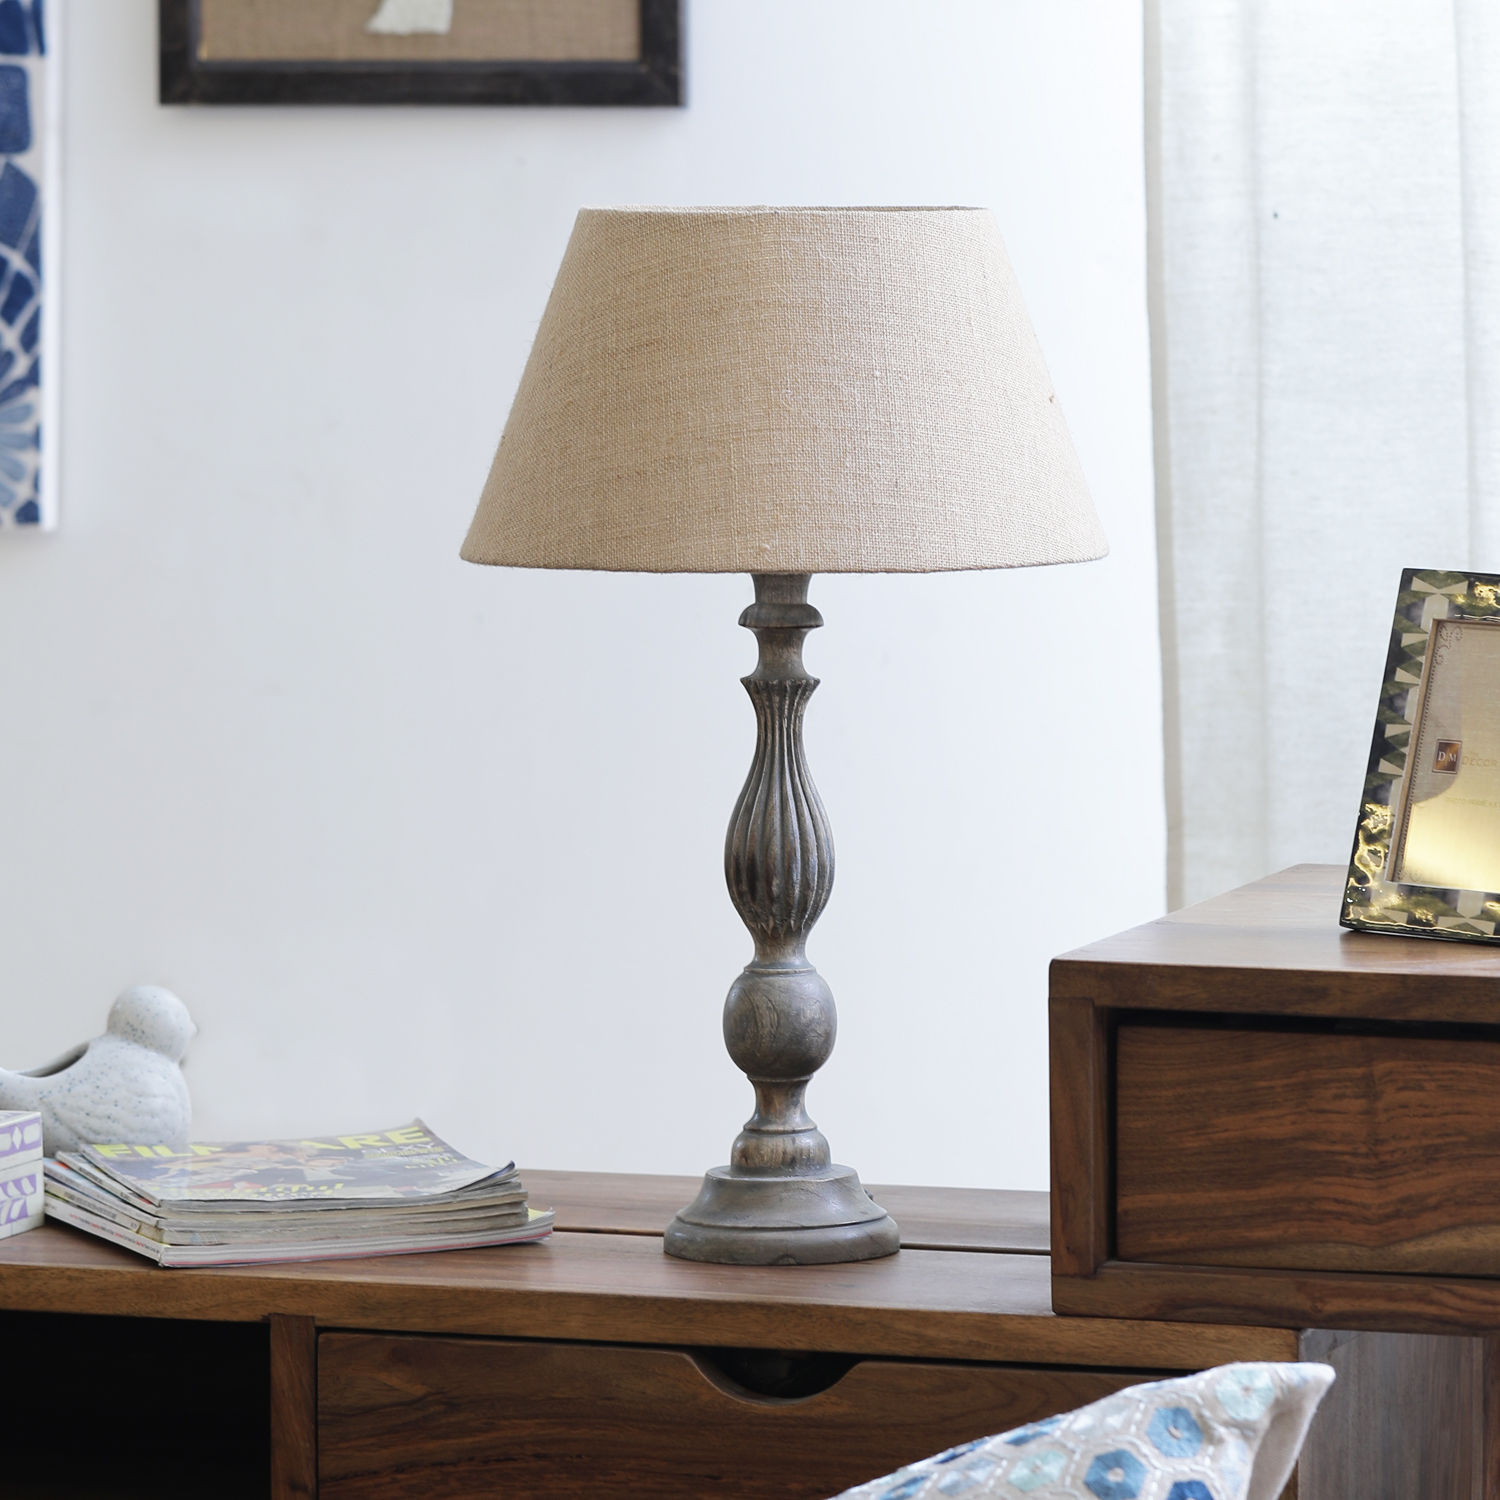 The Décor Mart Beige Shade With Wooden Base Table Lamp 13 5 X